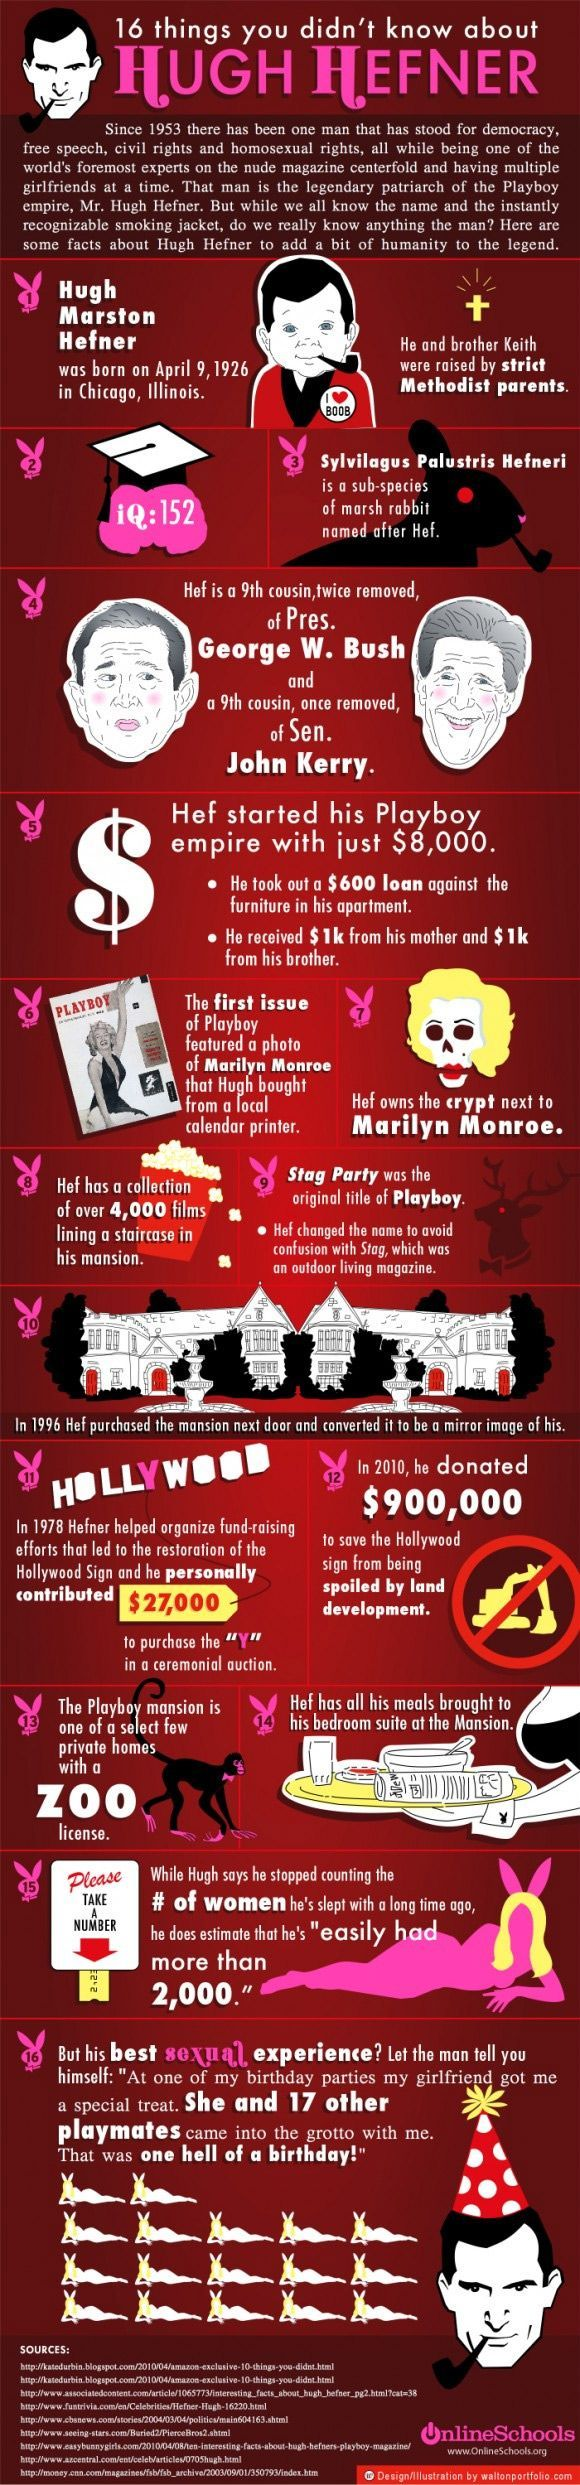 TV and Movies by the Numbers